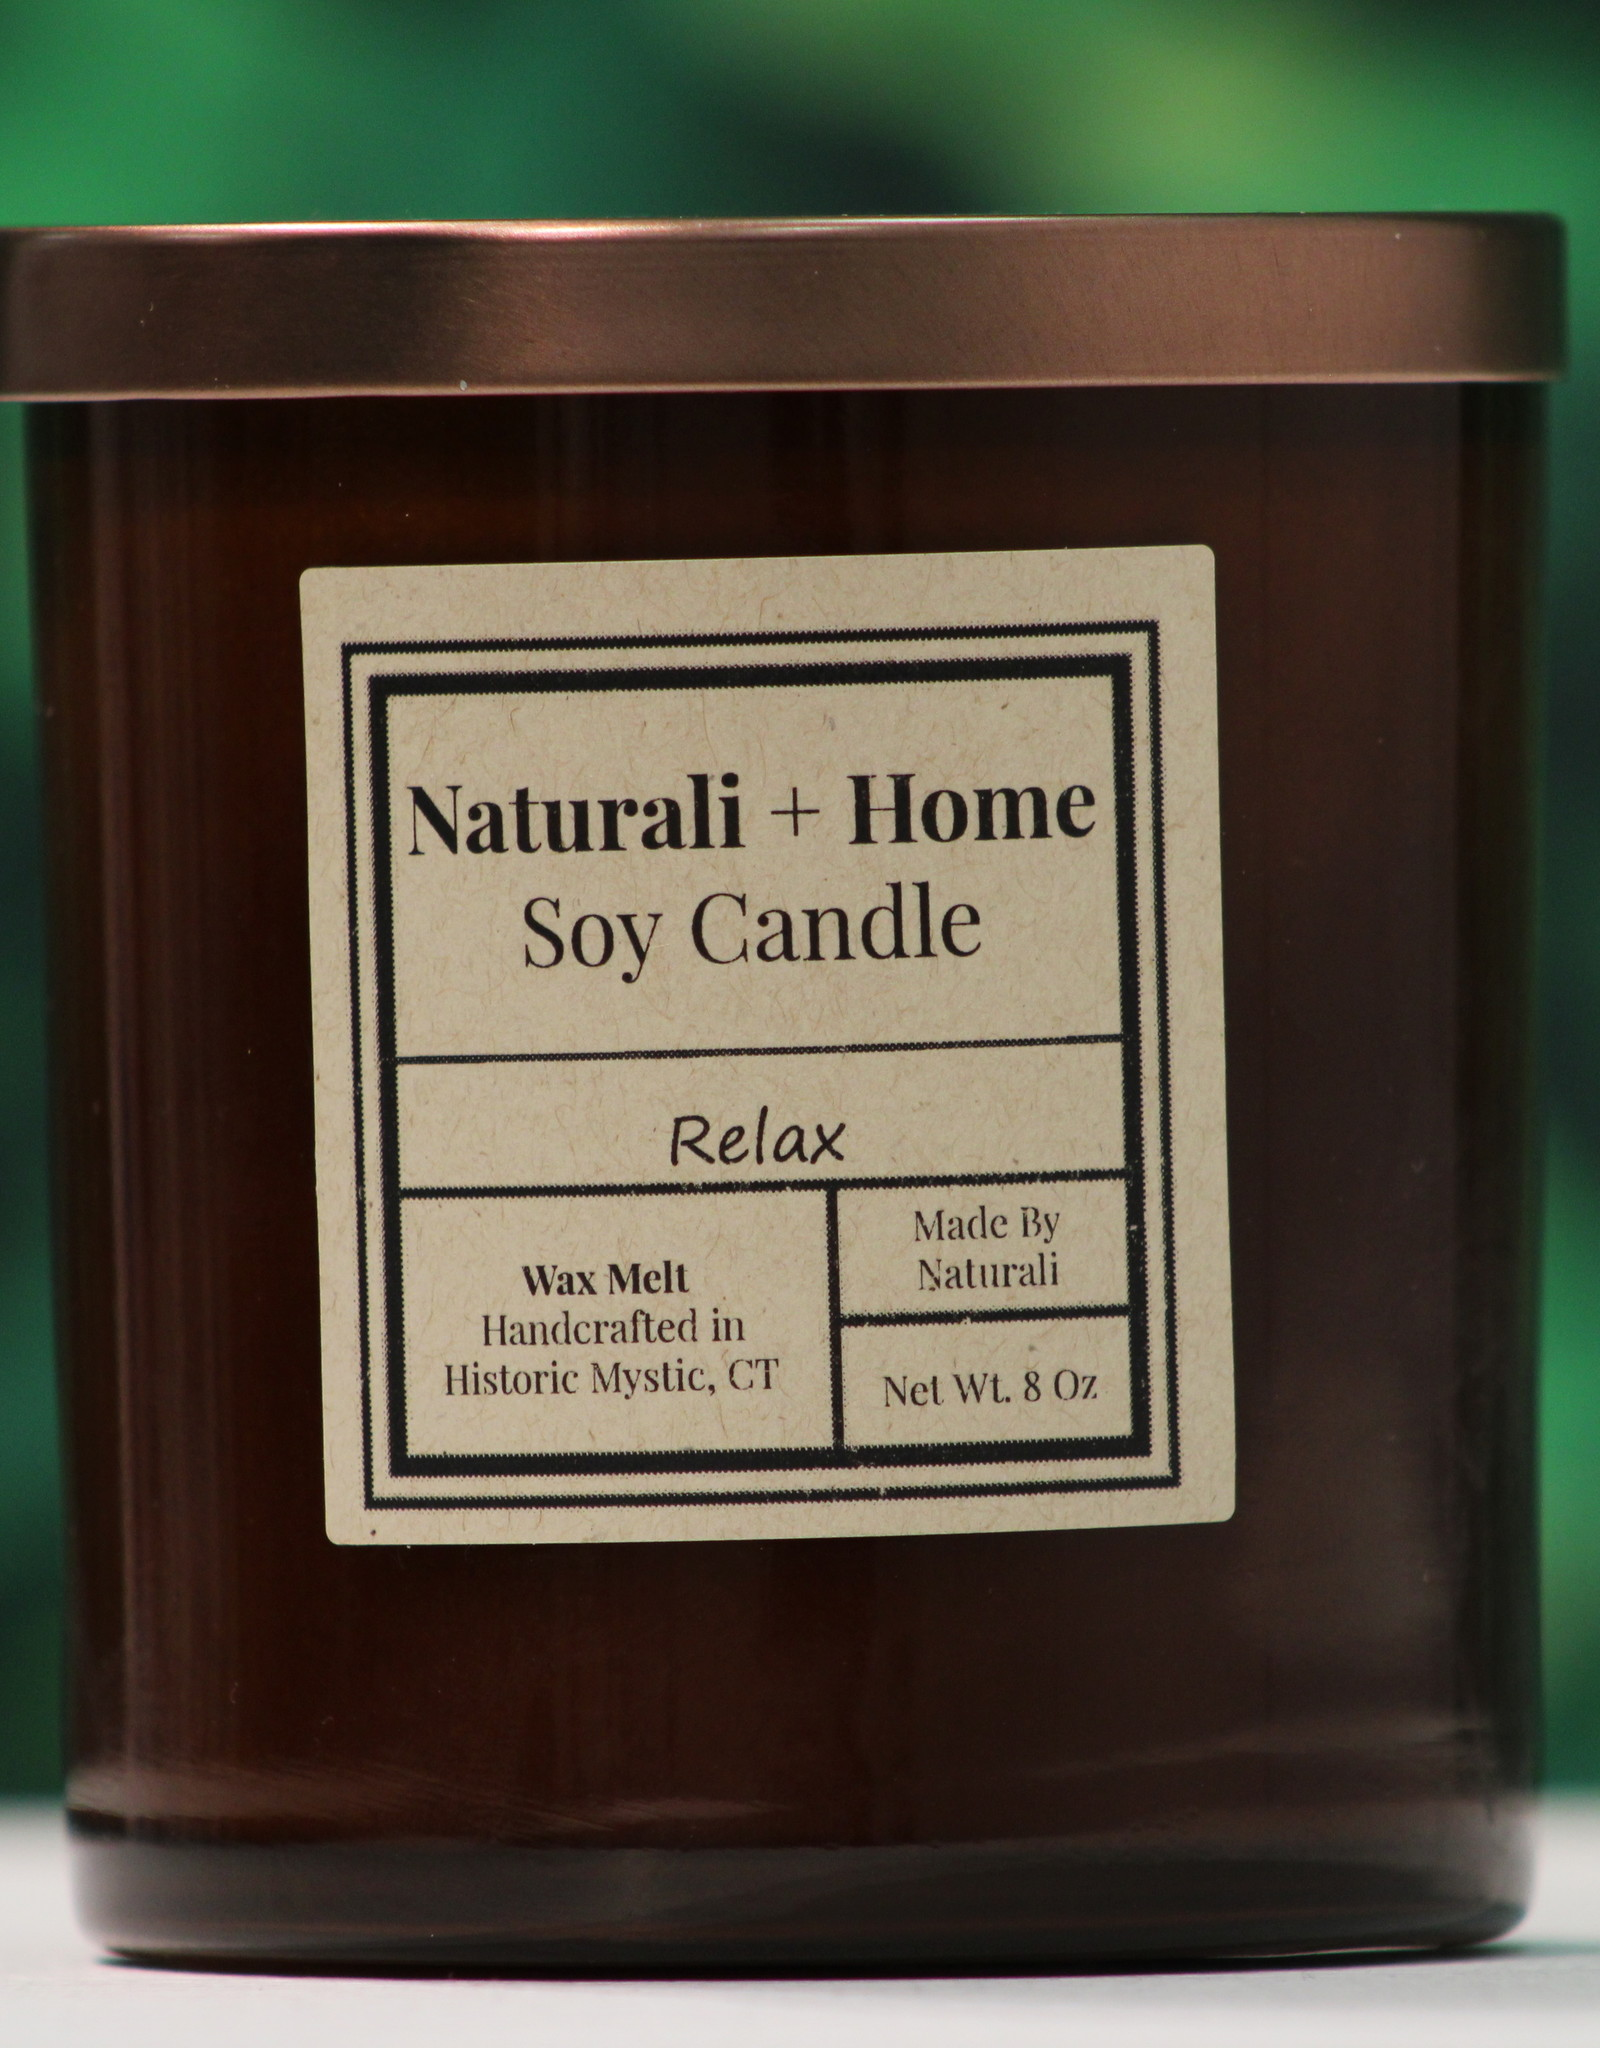 Naturali Home Relax Soy Candle (8oz) Discontinued